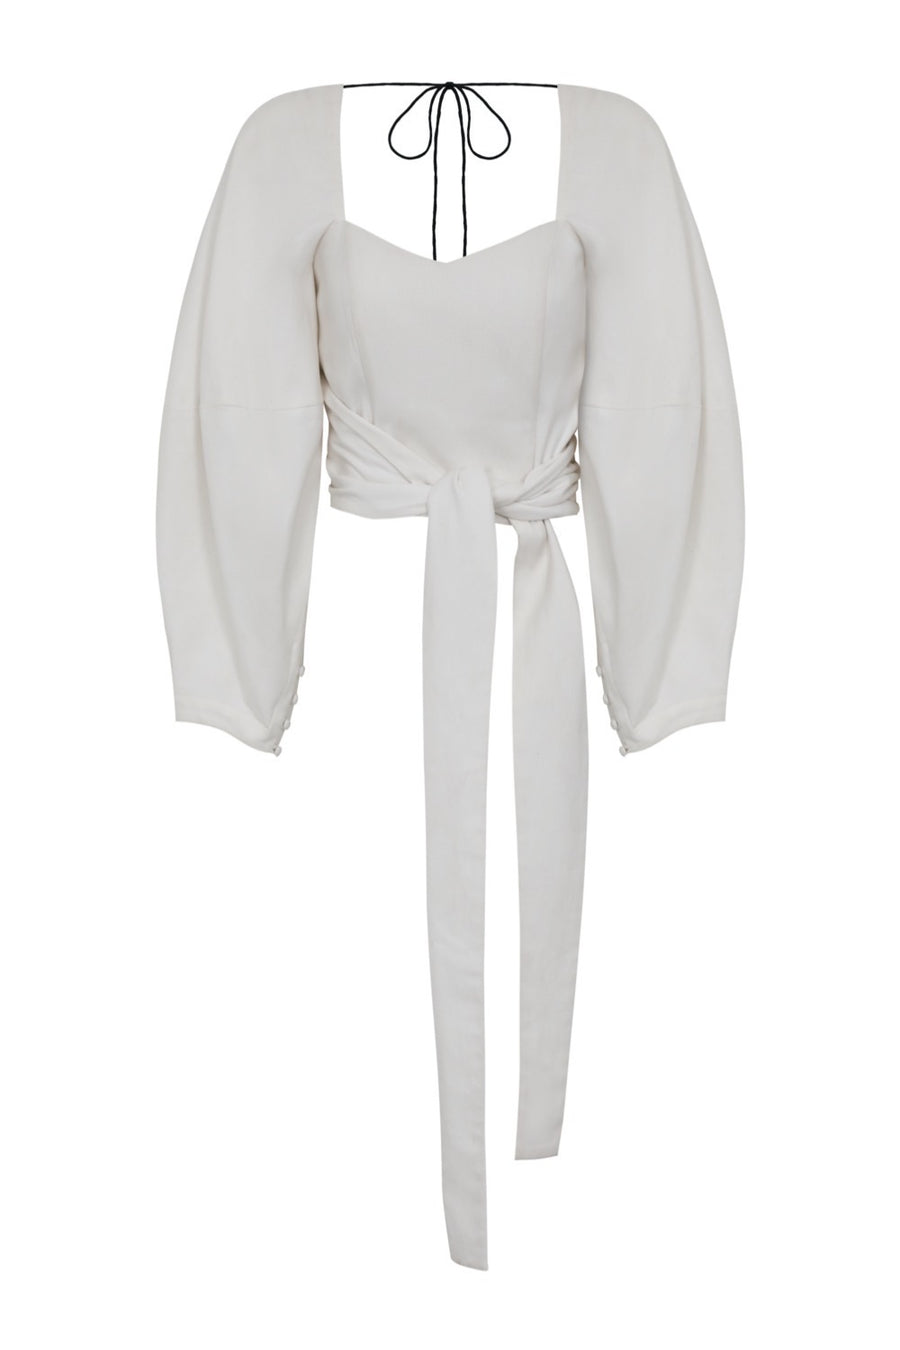 Zof White Cotton Wrap Top- Made to Order